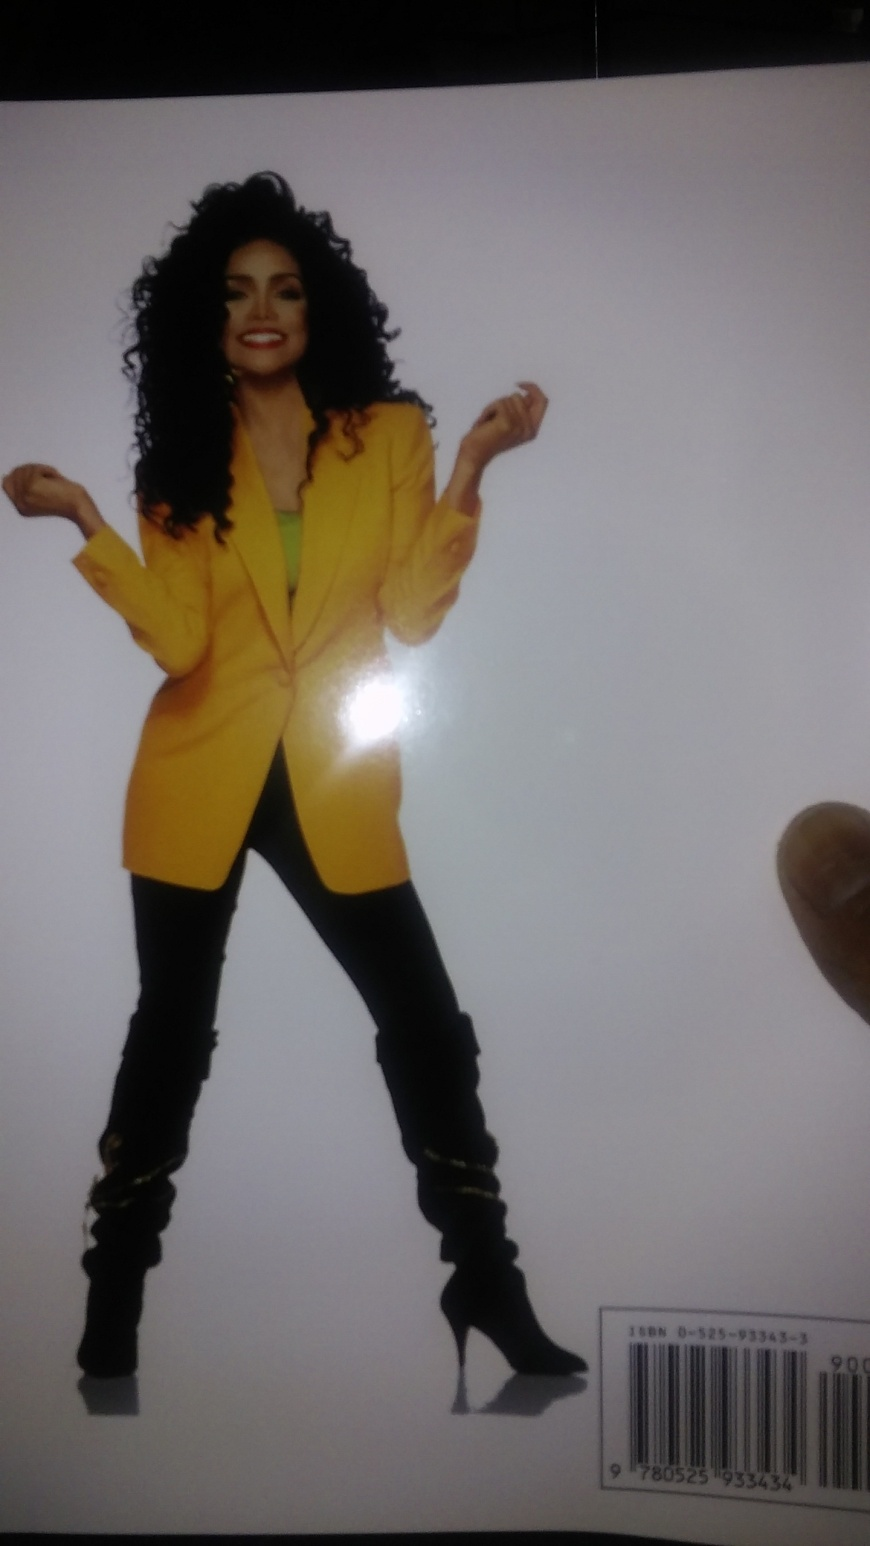 """This photo is part of a press kit that I purchased. This is Janet Jackson's famous sister Latoya Jackson. This press kit photo of Latoya Jackson accompanied her photo(I hope that I worded this right) that promoted her book titled 'Growing Up in the Jackson Family'       """" Latoya Latoya Jackson    with Patricia Romanowski"""""""